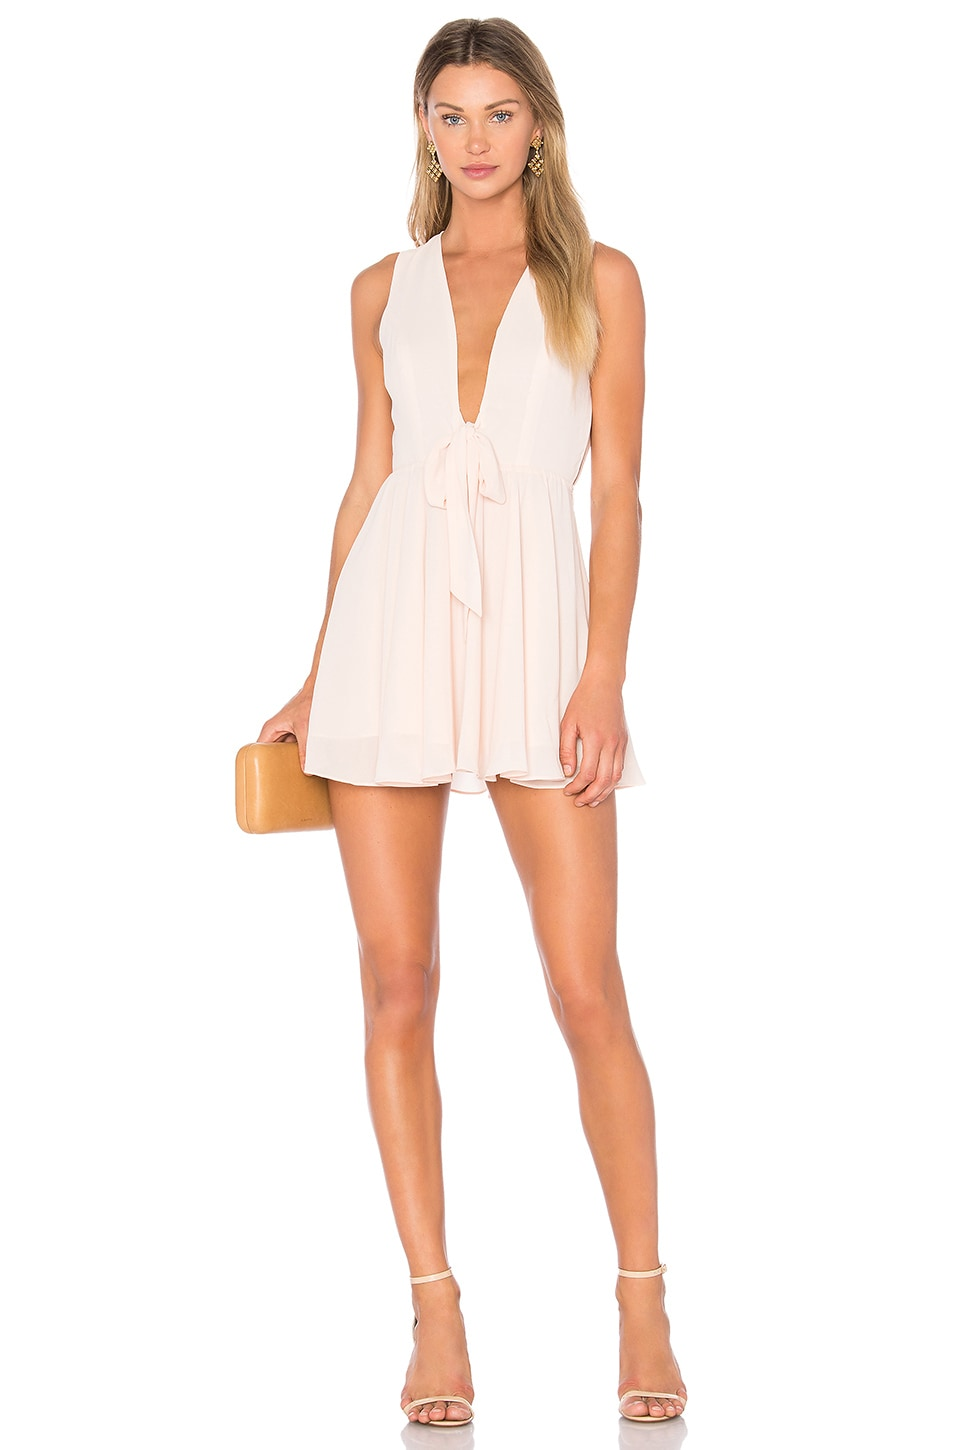 Lovers + Friends x REVOLVE Andie Dress in Blush